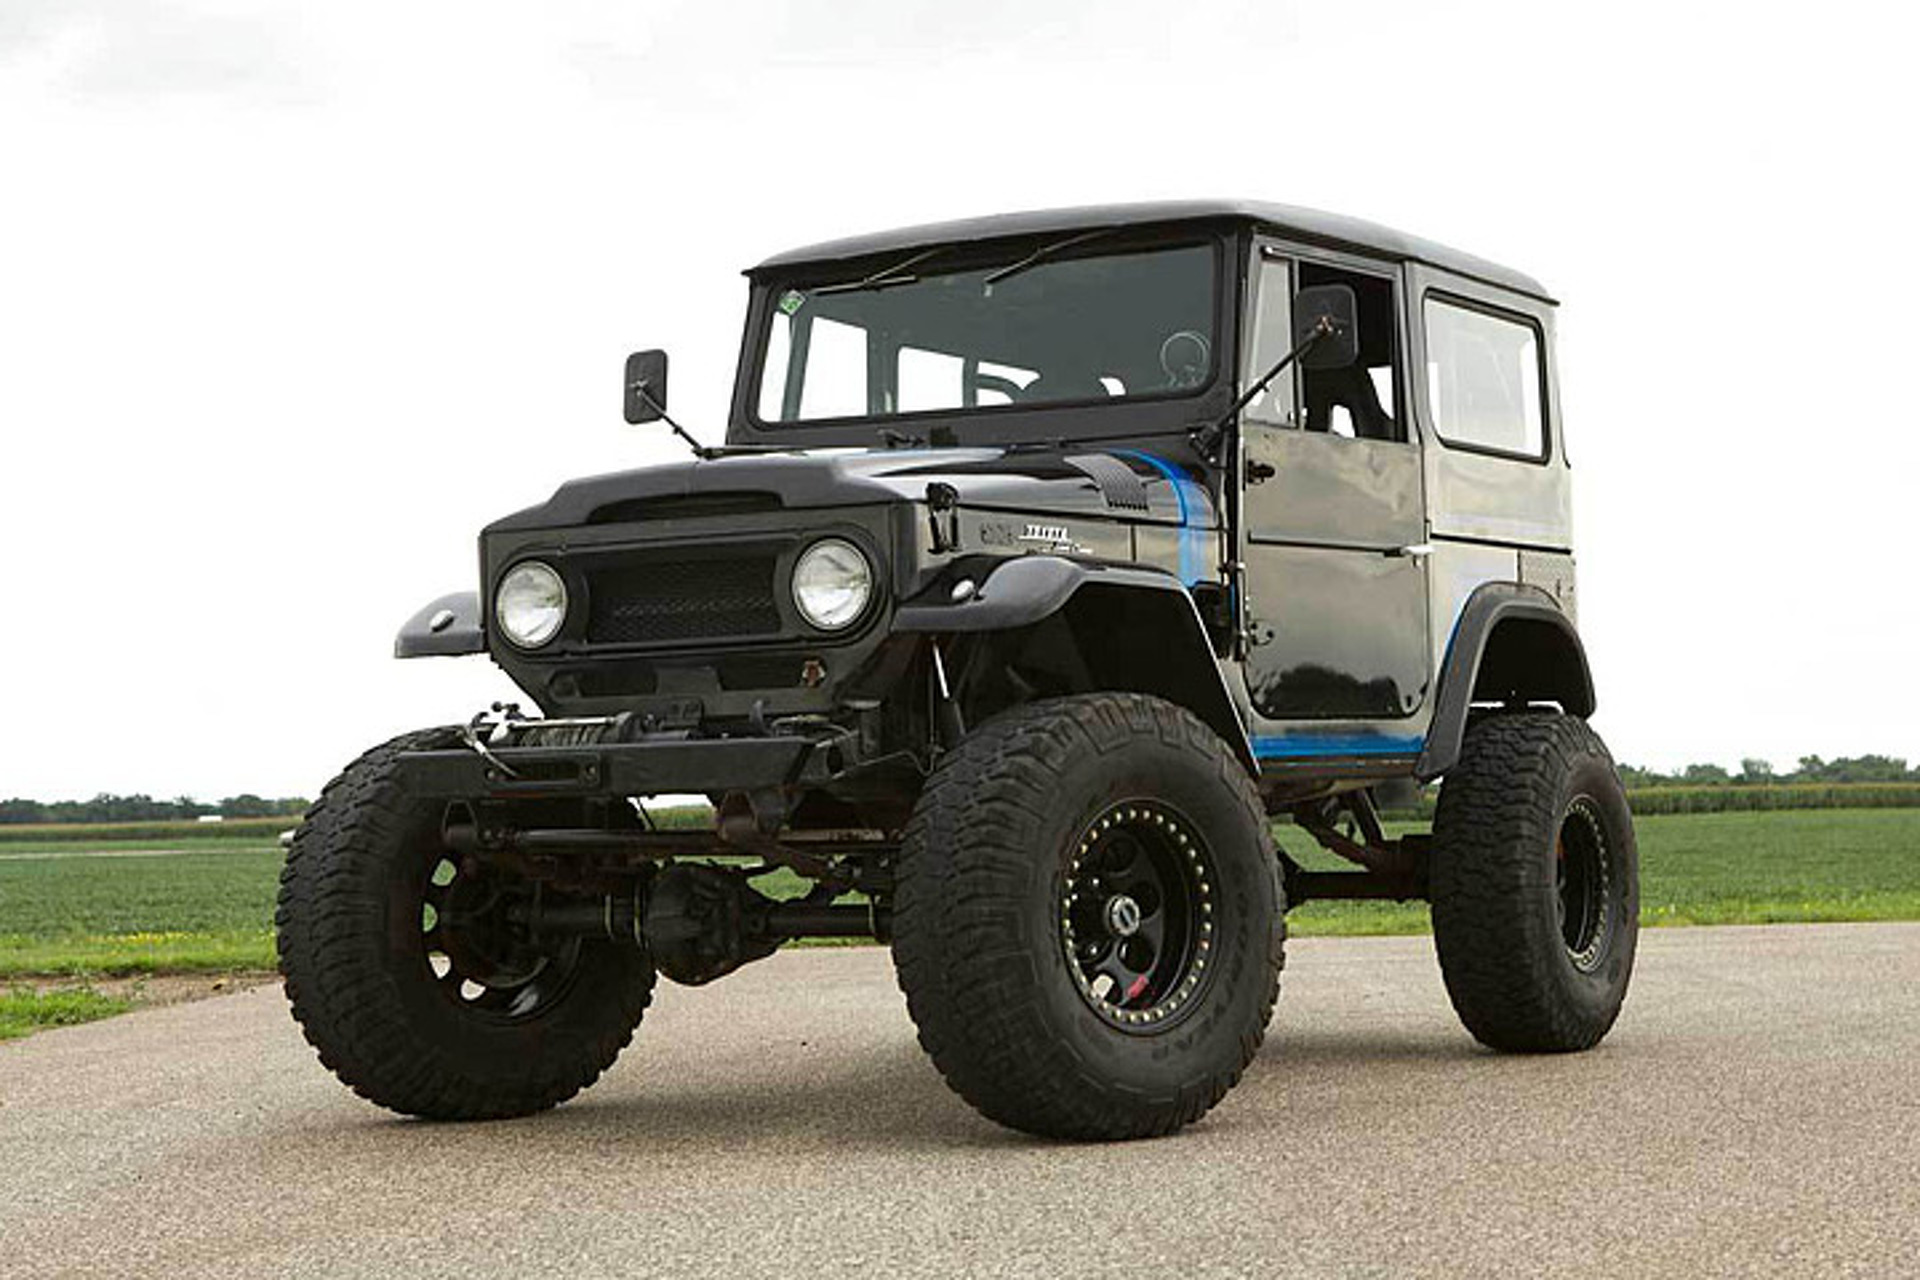 Theres A Chevy V8 Under This Toyota Land Cruiser Brute 1973 Fj40